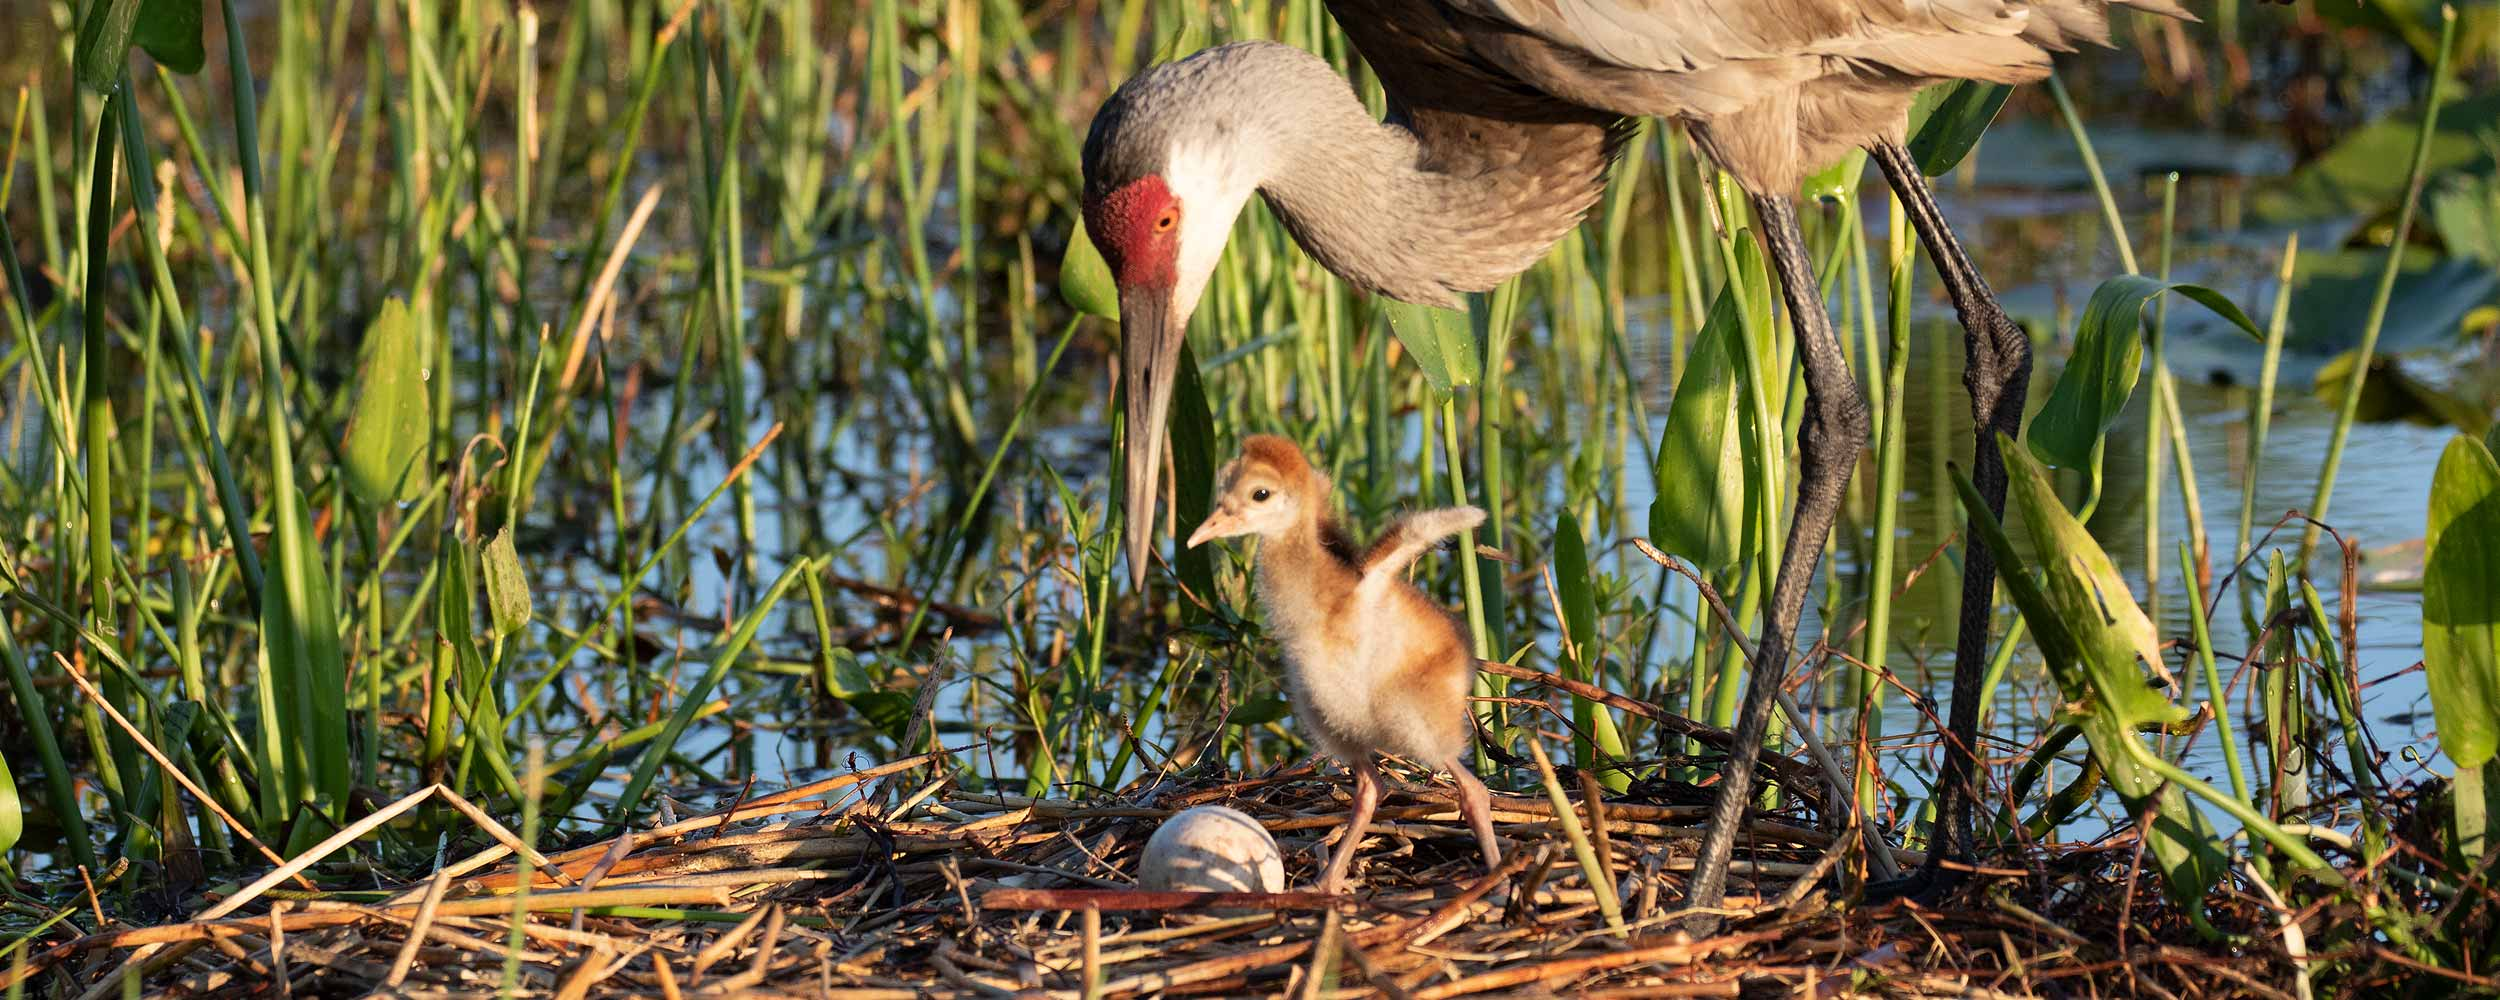 Mother and child bird image